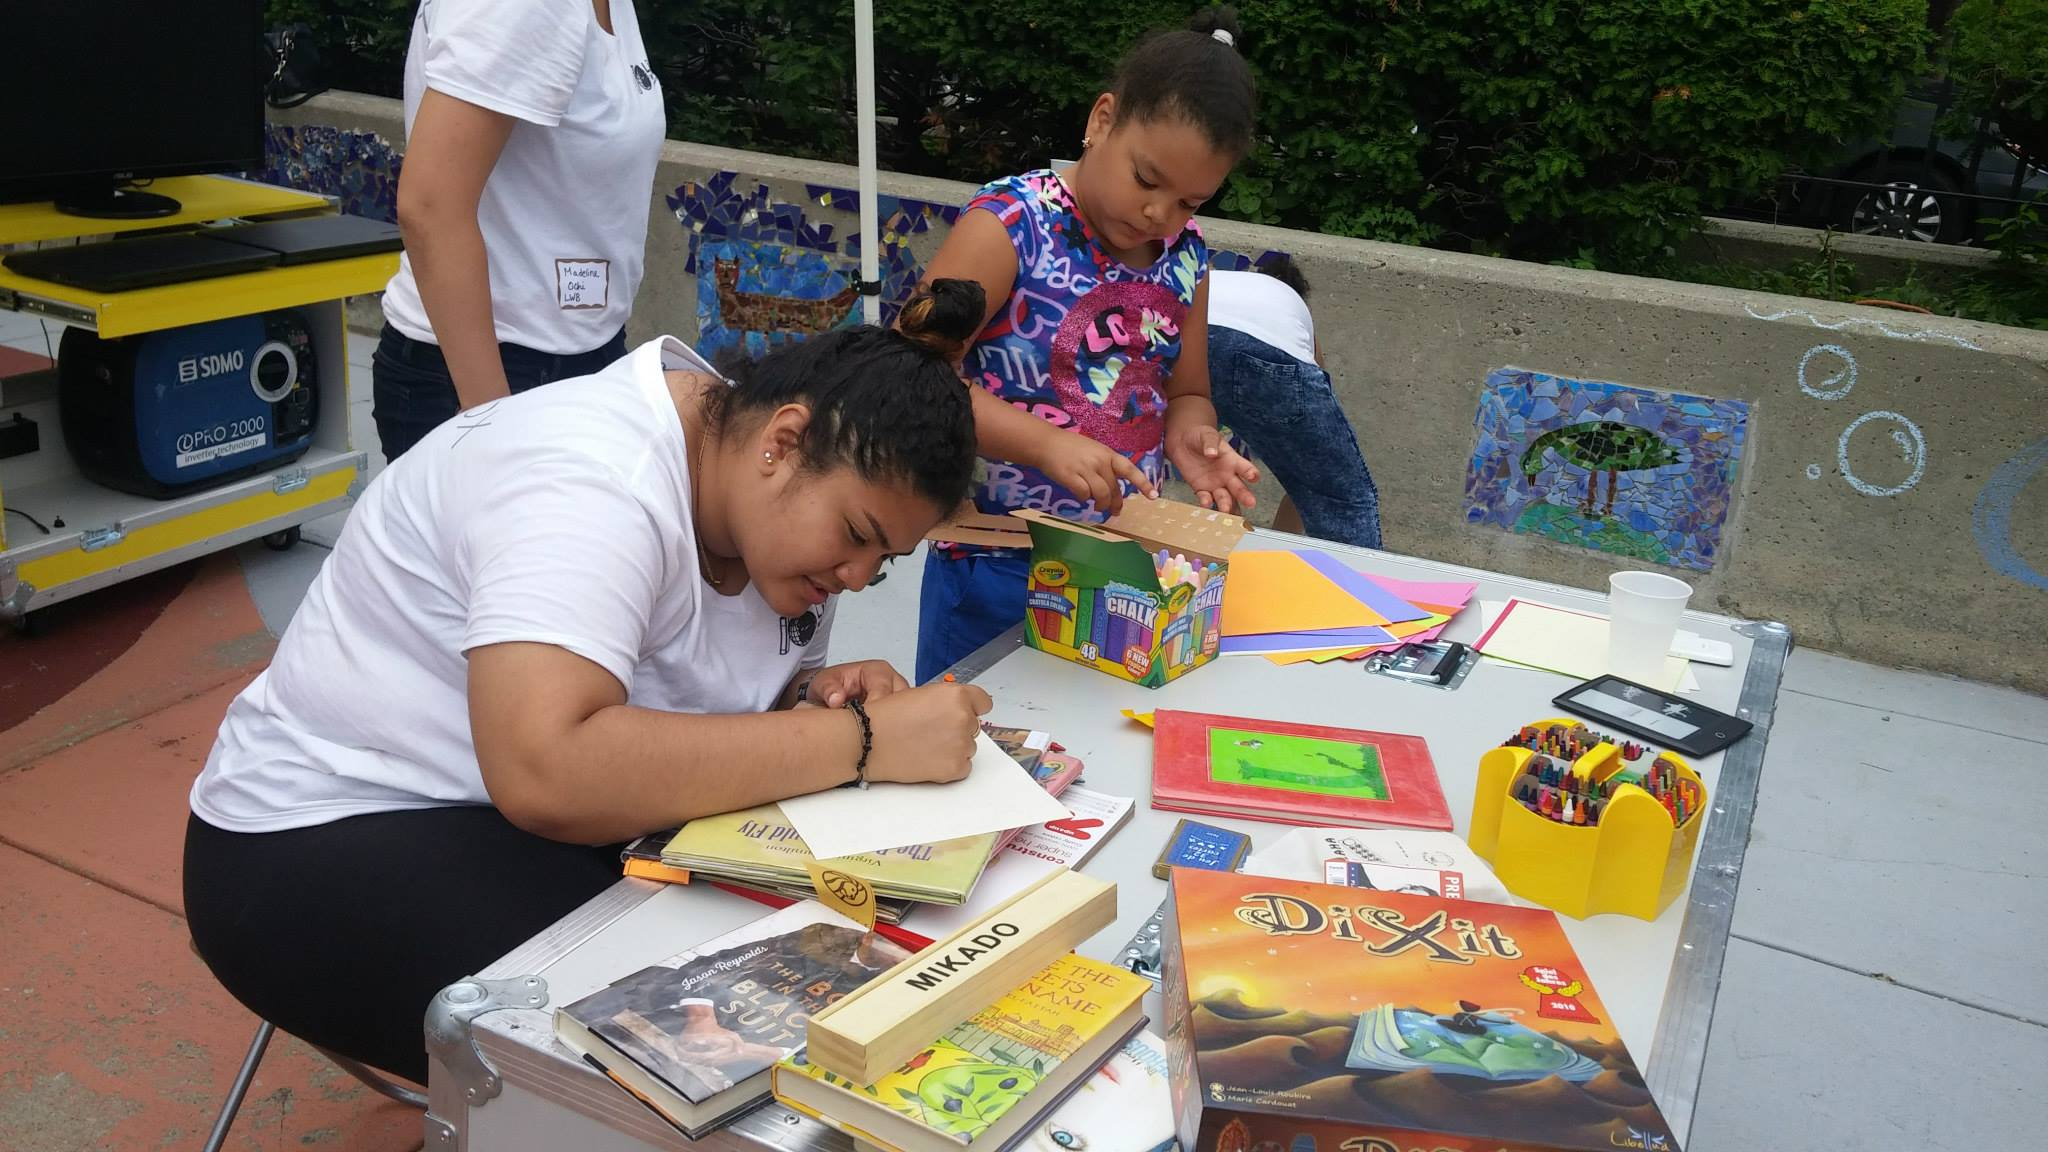 Libraries Without Borders staff doing arts and crafts with youth during an IdeasBox program in the Bronx, New York.